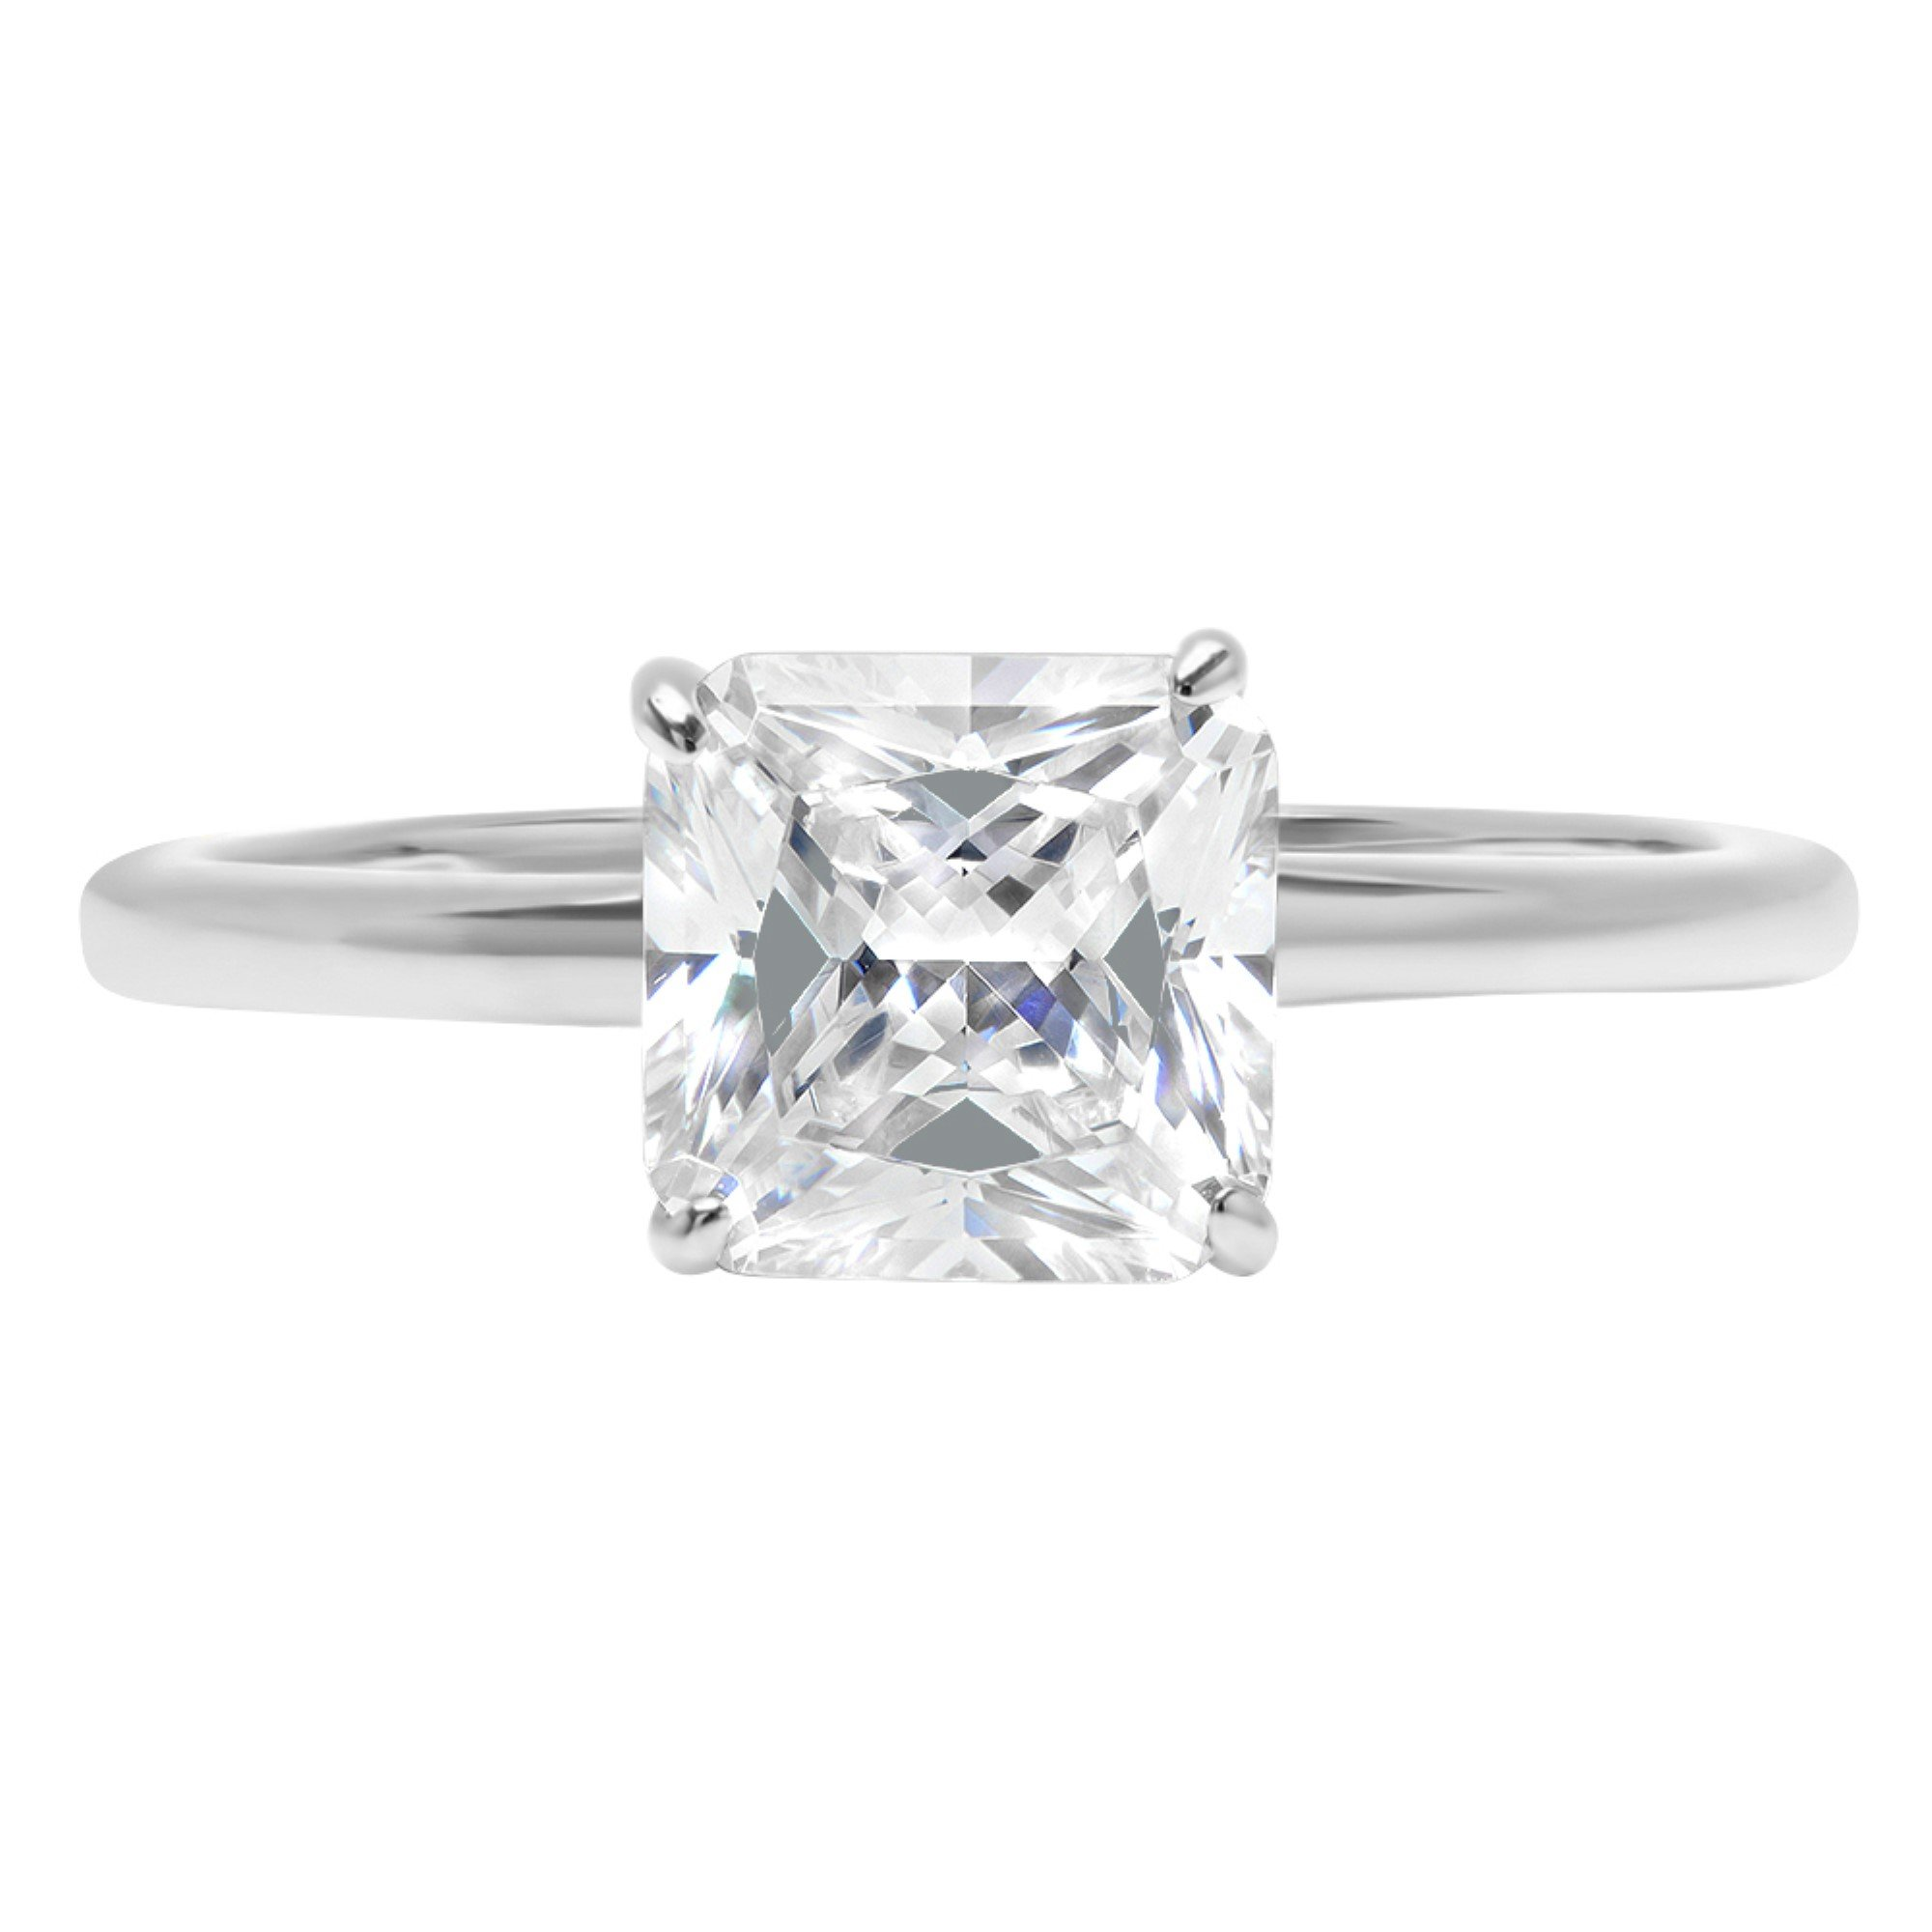 Asscher Brilliant Cut Classic Solitaire Designer Wedding Bridal Statement Anniversary Engagement Promise Ring Solid 14k White Gold, 1.7ct, 5.25 by Clara Pucci